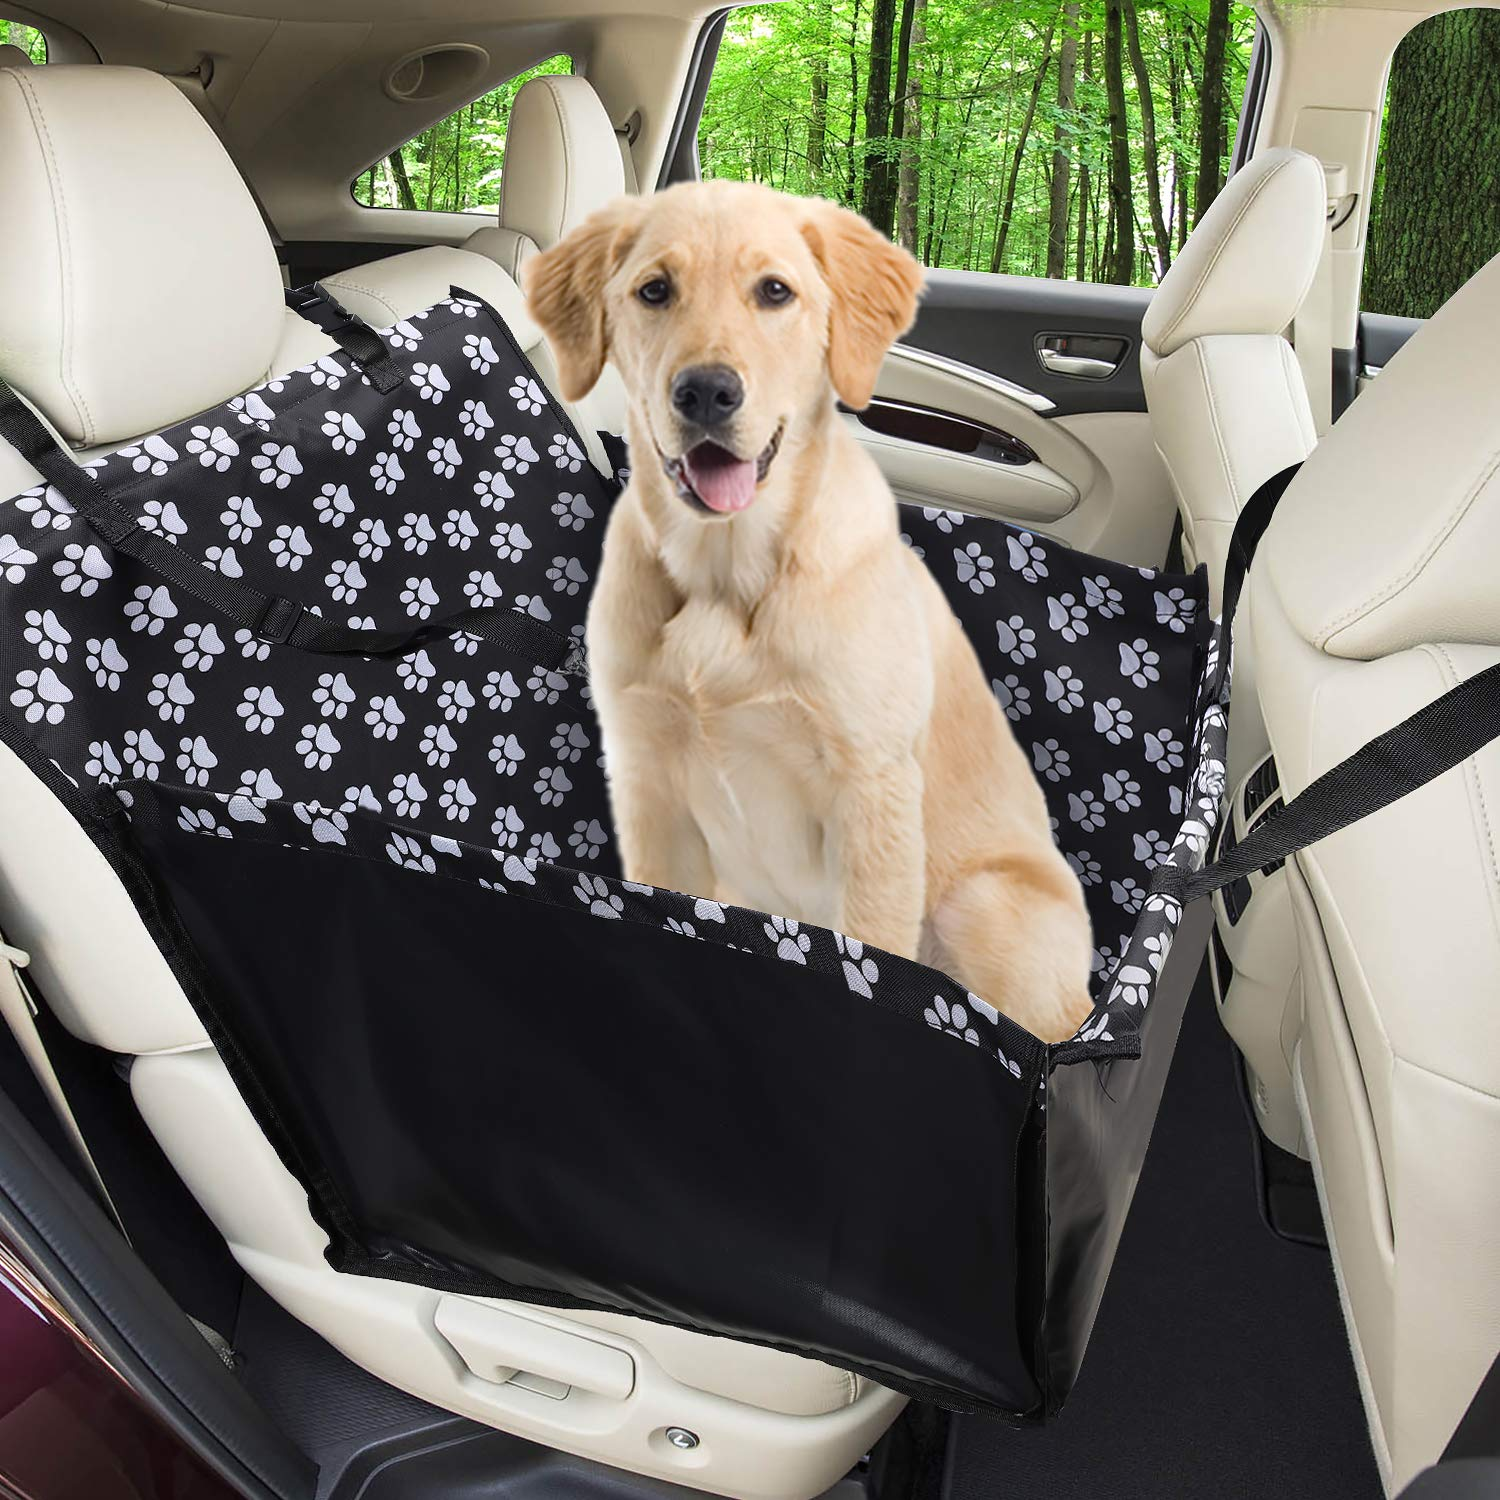 Funpet Car Booster for Dogs,Waterproof Dog Seat Covers Pet Car Blanket with Dog Seat Belt, Travel Seat predector Dog Basket for Back Seat Front Seat Dog Seat Cover (68 x 57 x 33 CM)